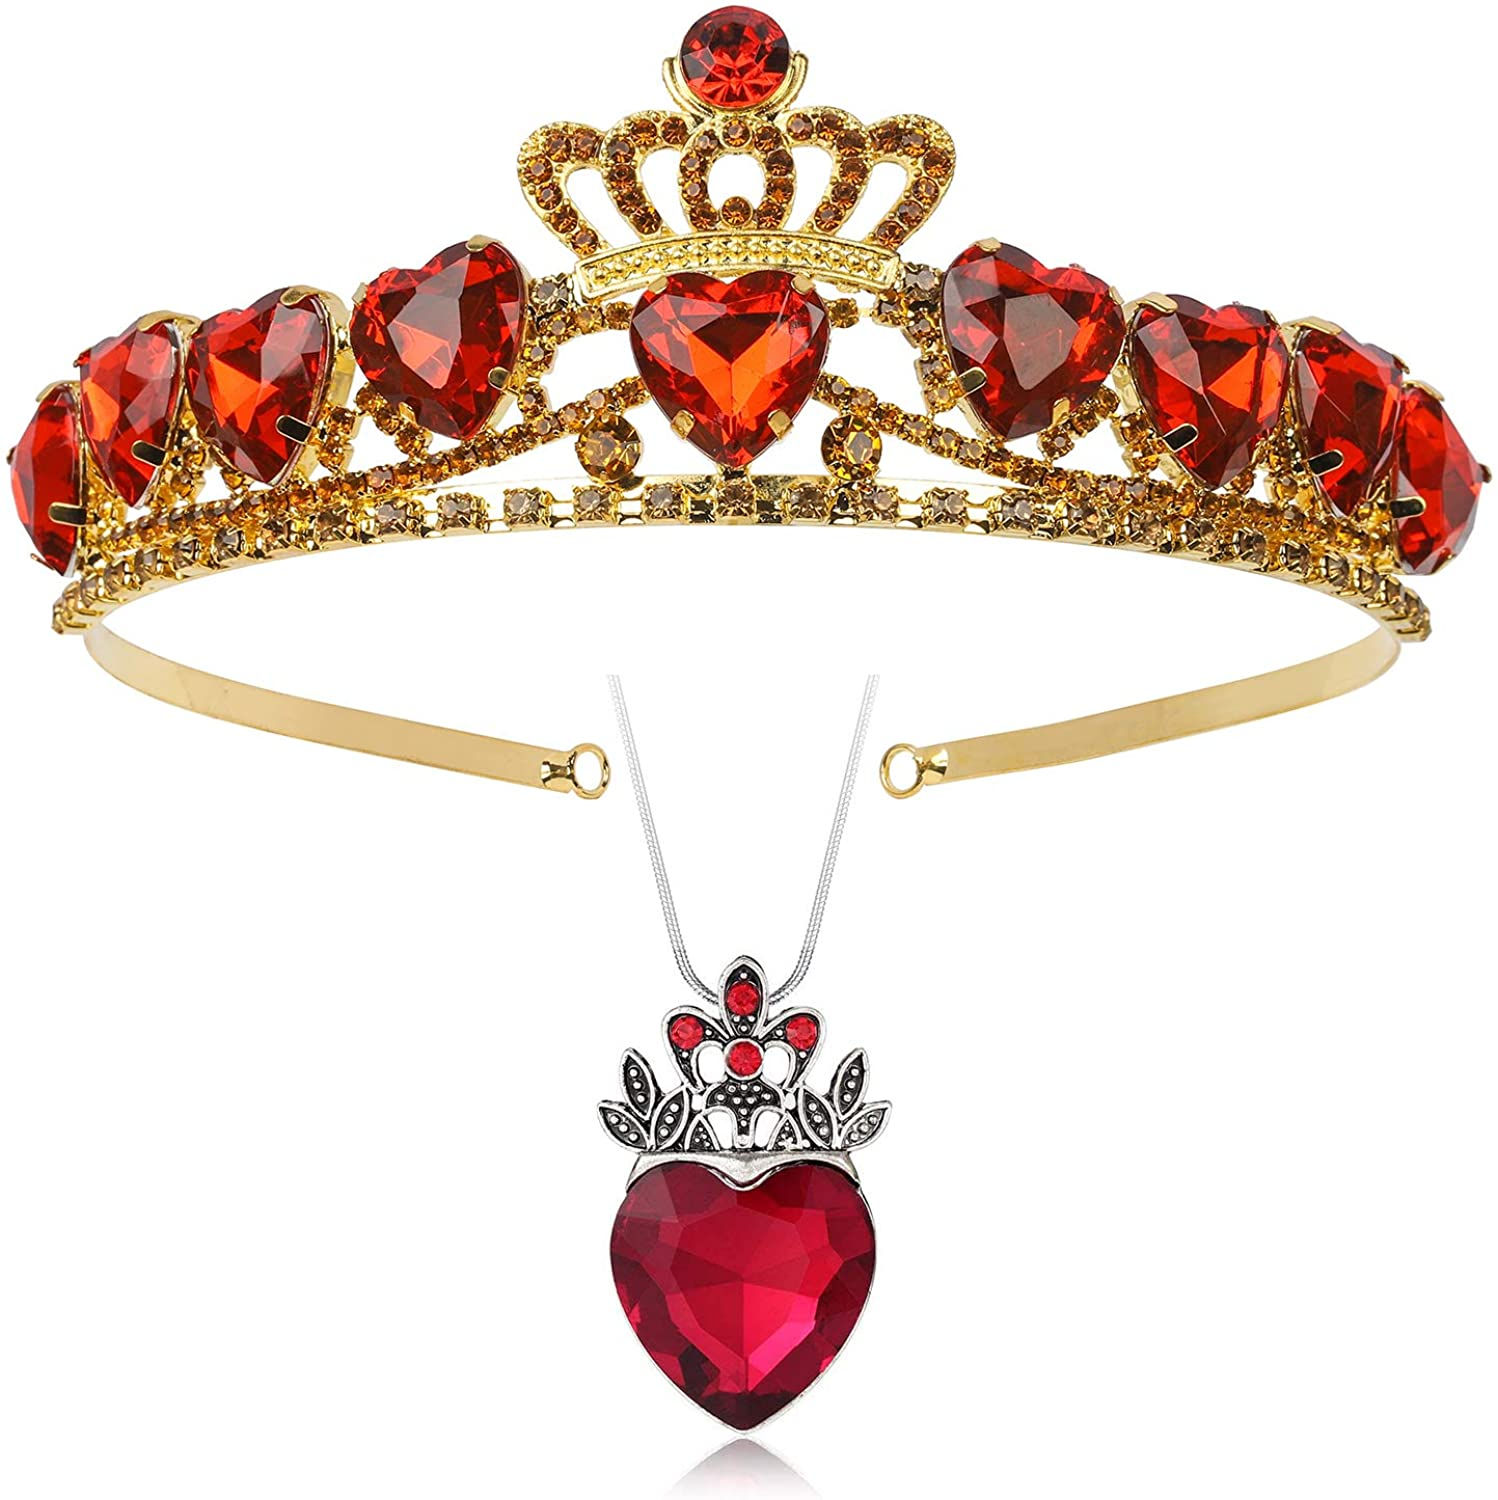 Botrinal Evie Royal Red Heart Necklace and Tiara Descendants Red